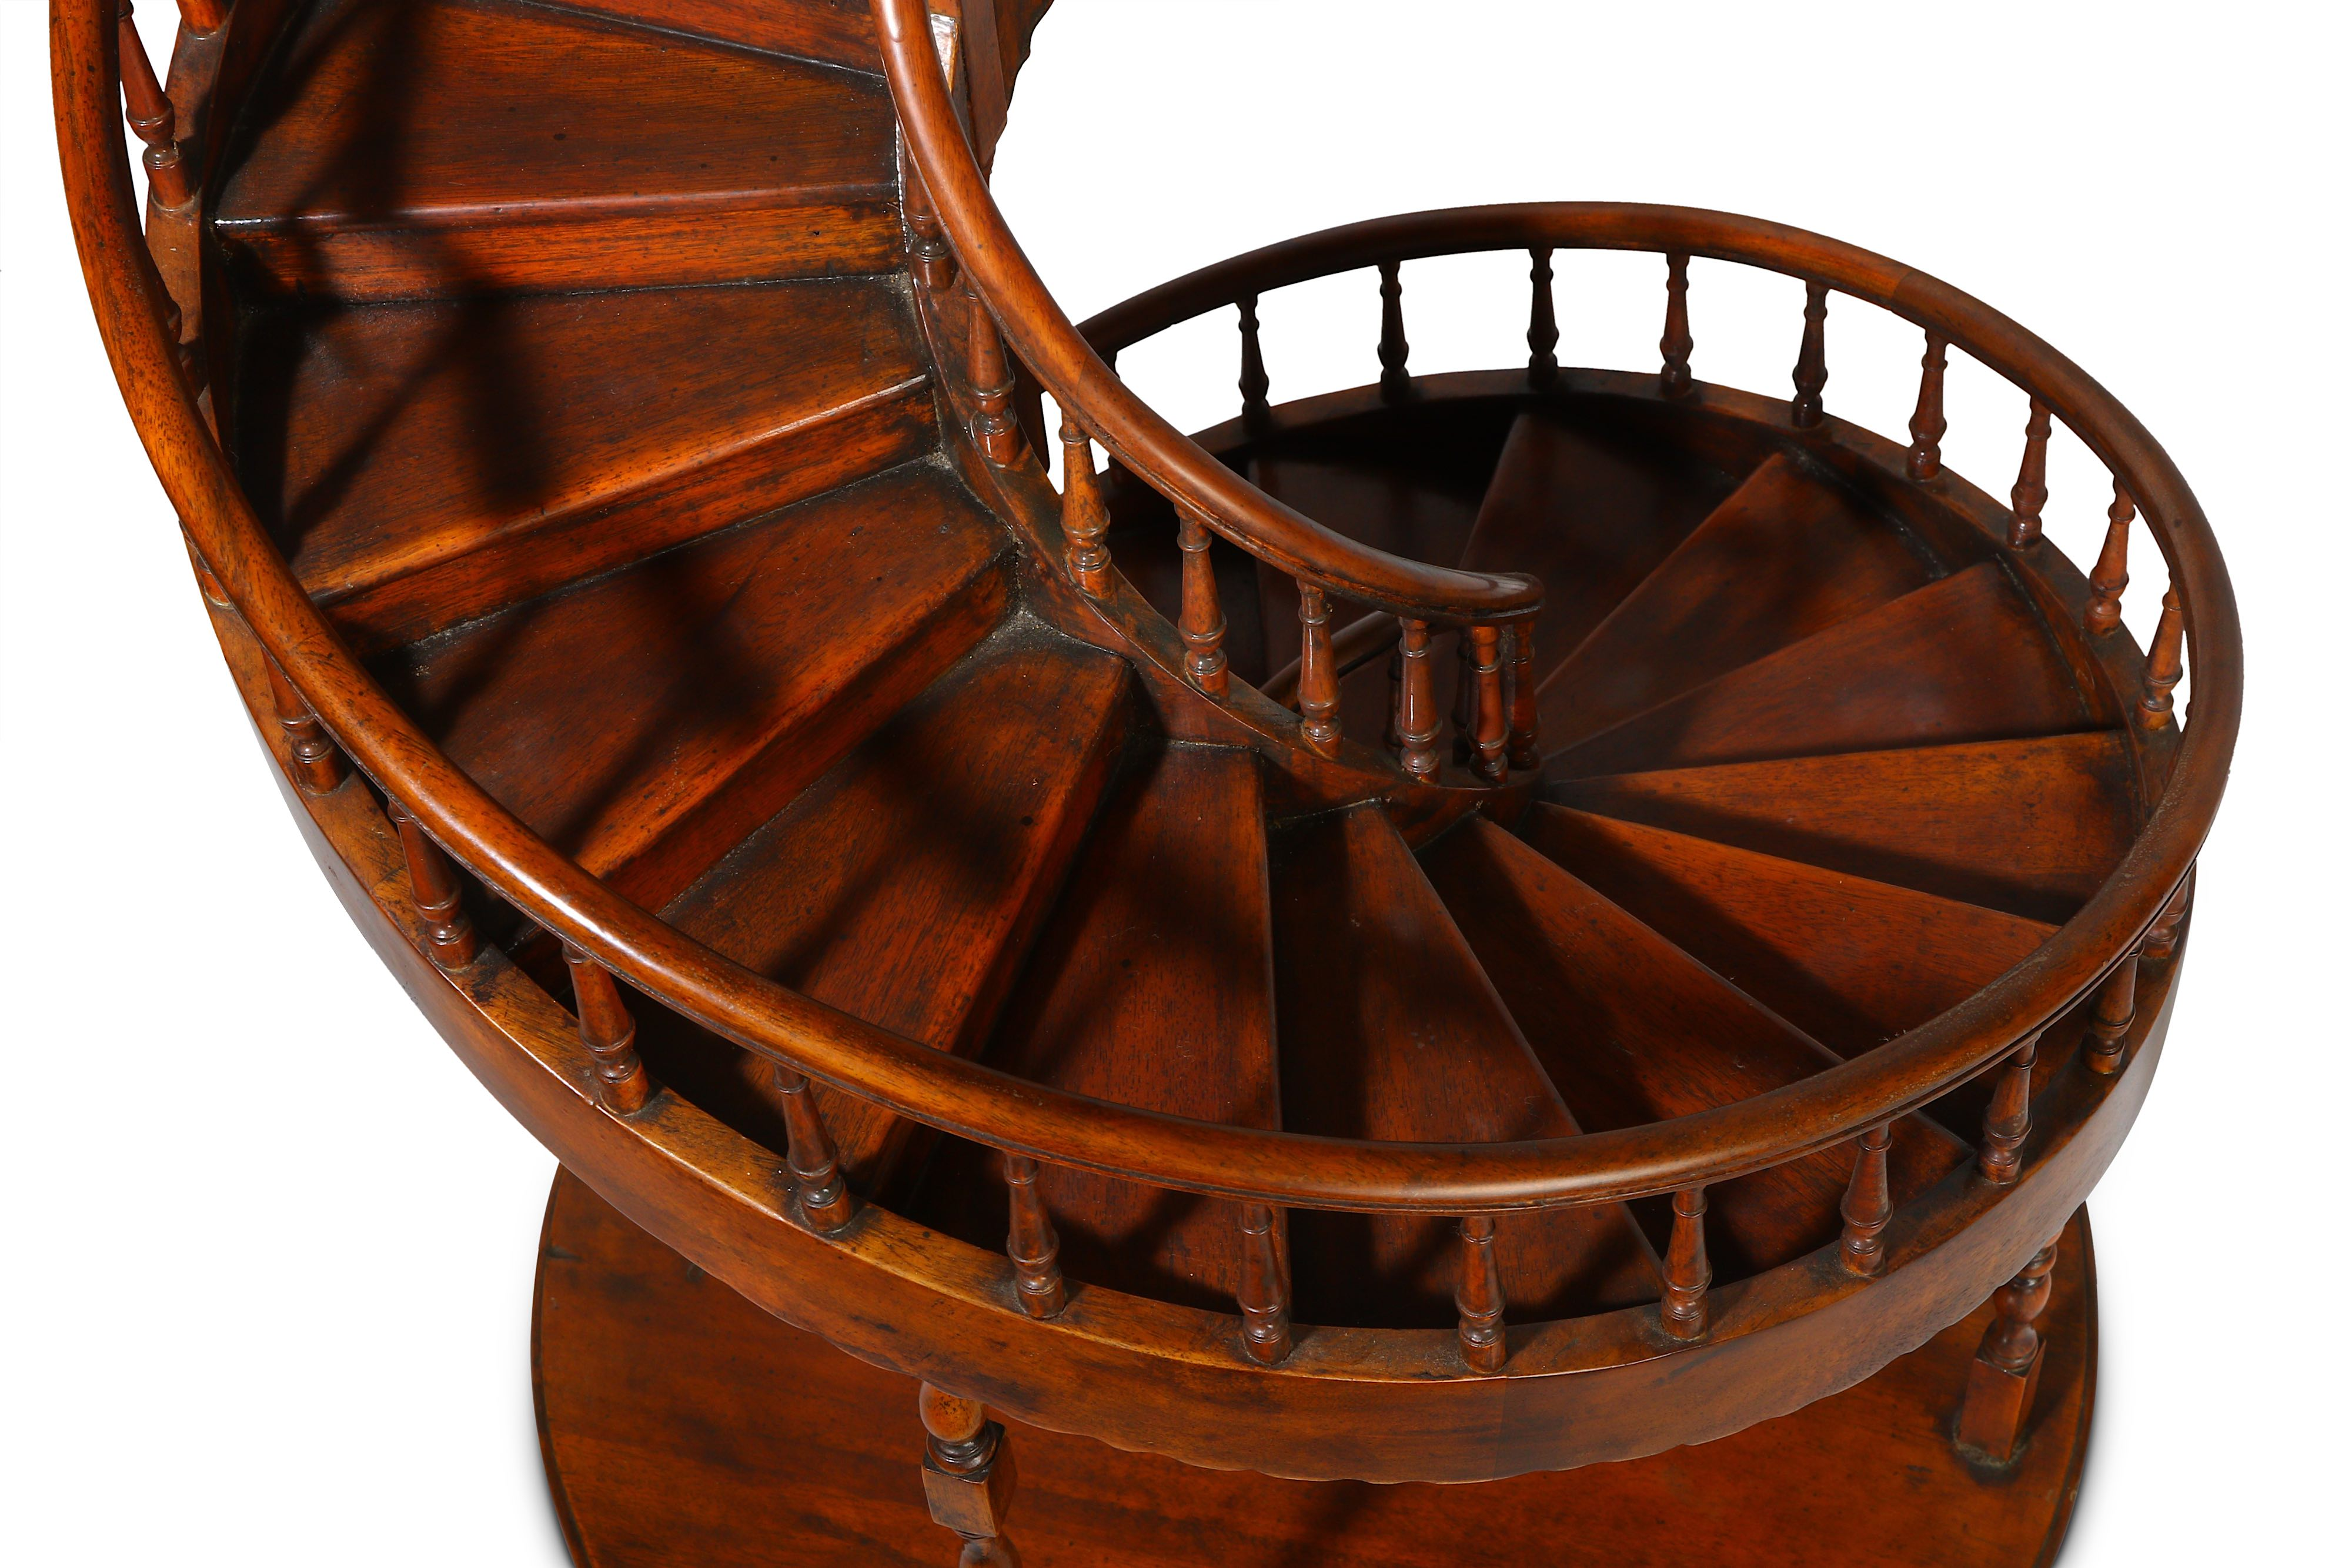 A LARGE EARLY 20TH CENTURY MAHOGANY APPRENTICE'S ARCHITECTURAL MODEL OF A SPIRAL STAIRCASE - Image 7 of 9